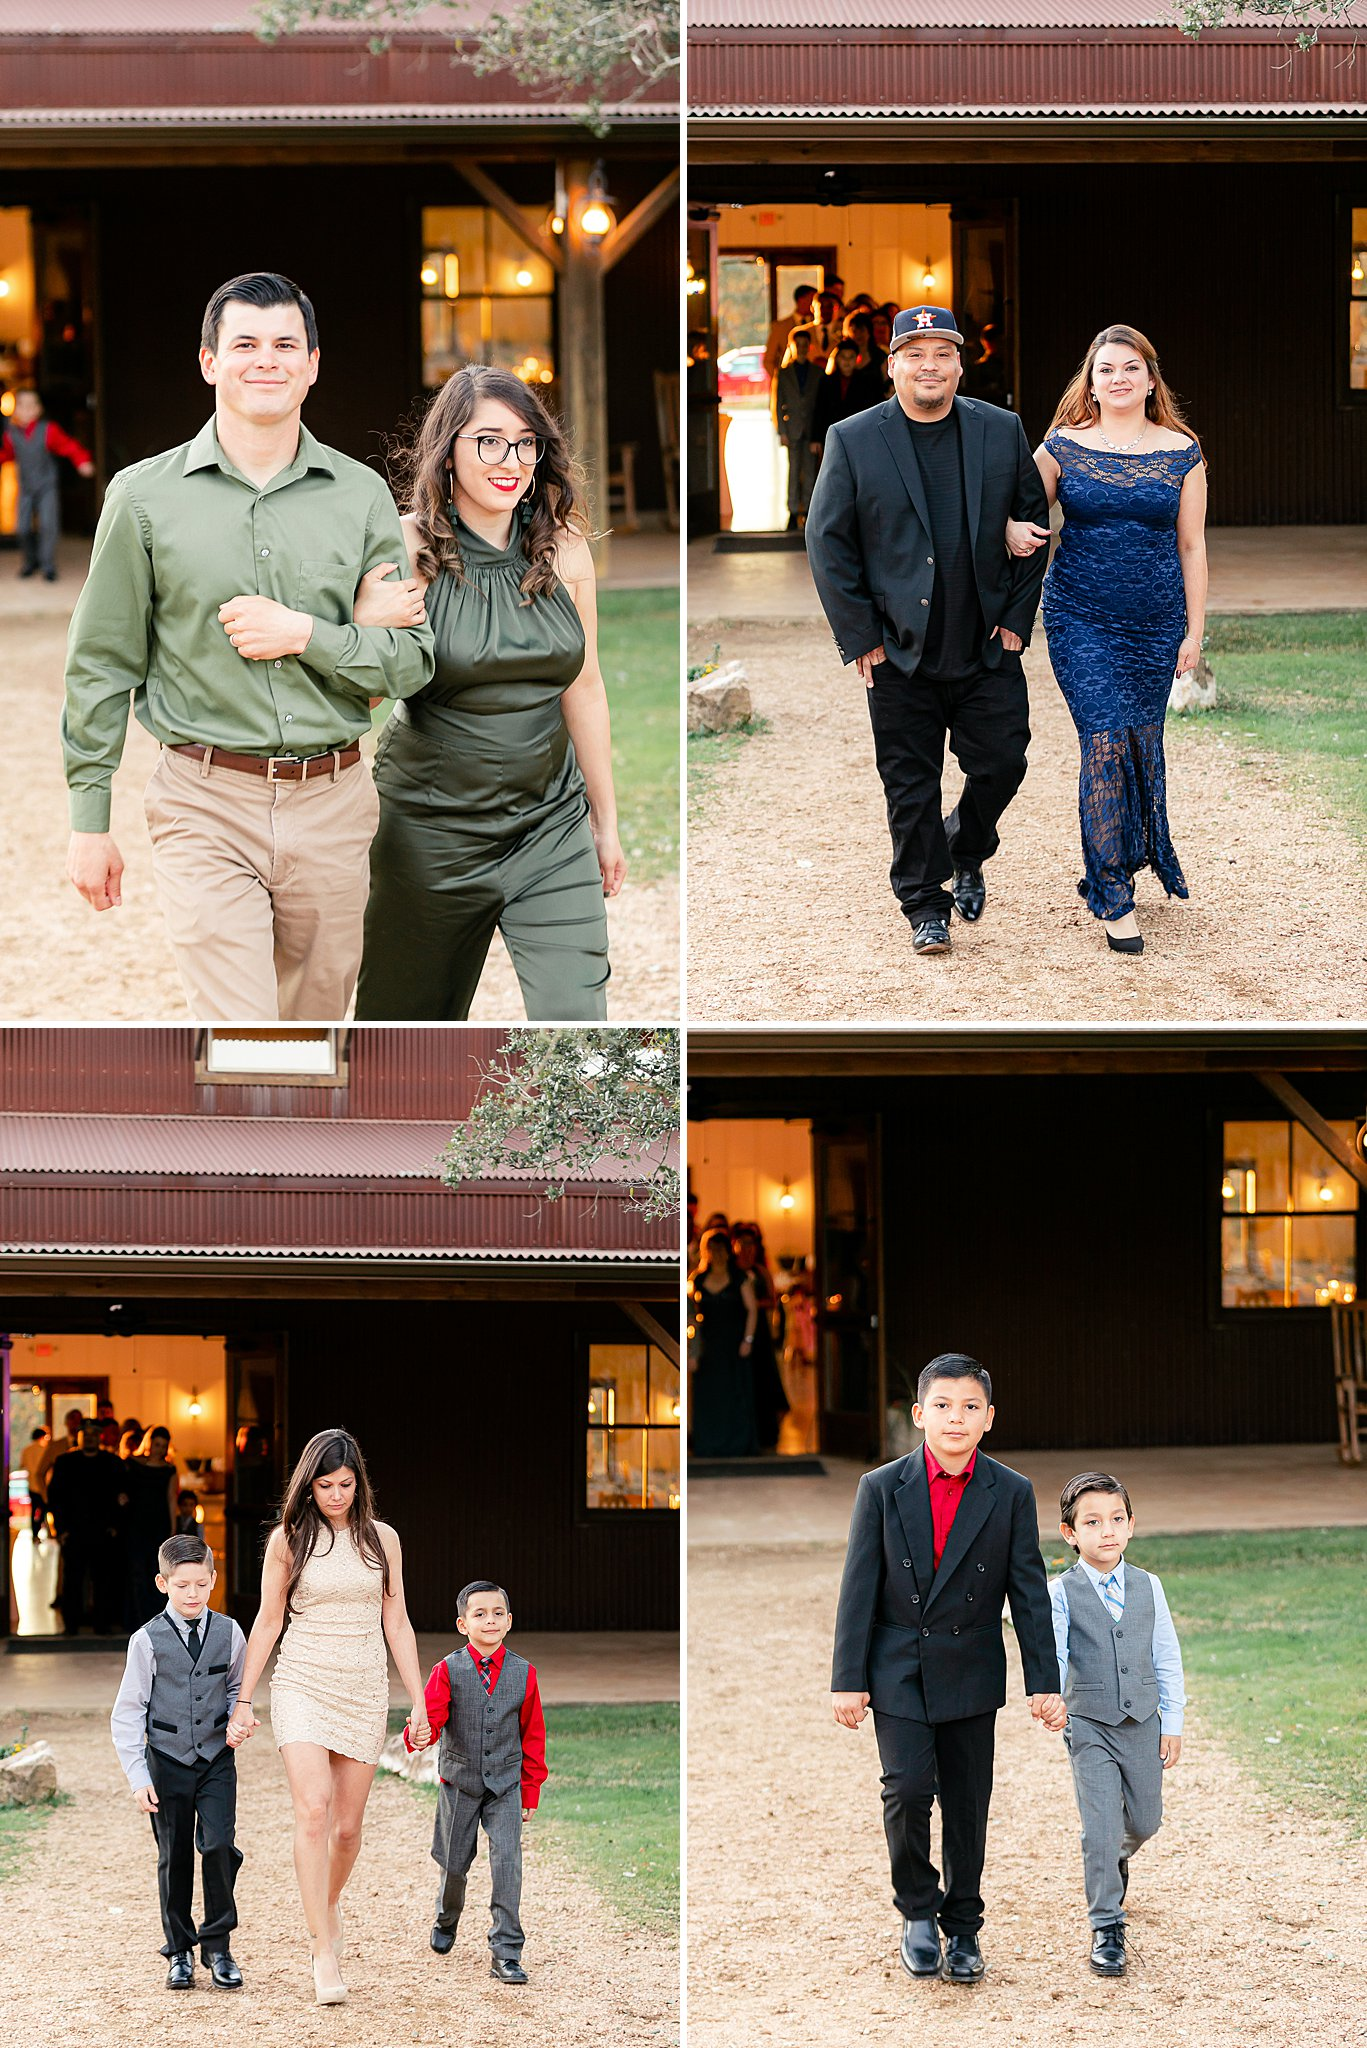 Carly-Barton-Photography-Texas-Wedding-Photographer-Western-Sky-Wedding-Event-Venue-Emerald-Green-Theme_0010.jpg